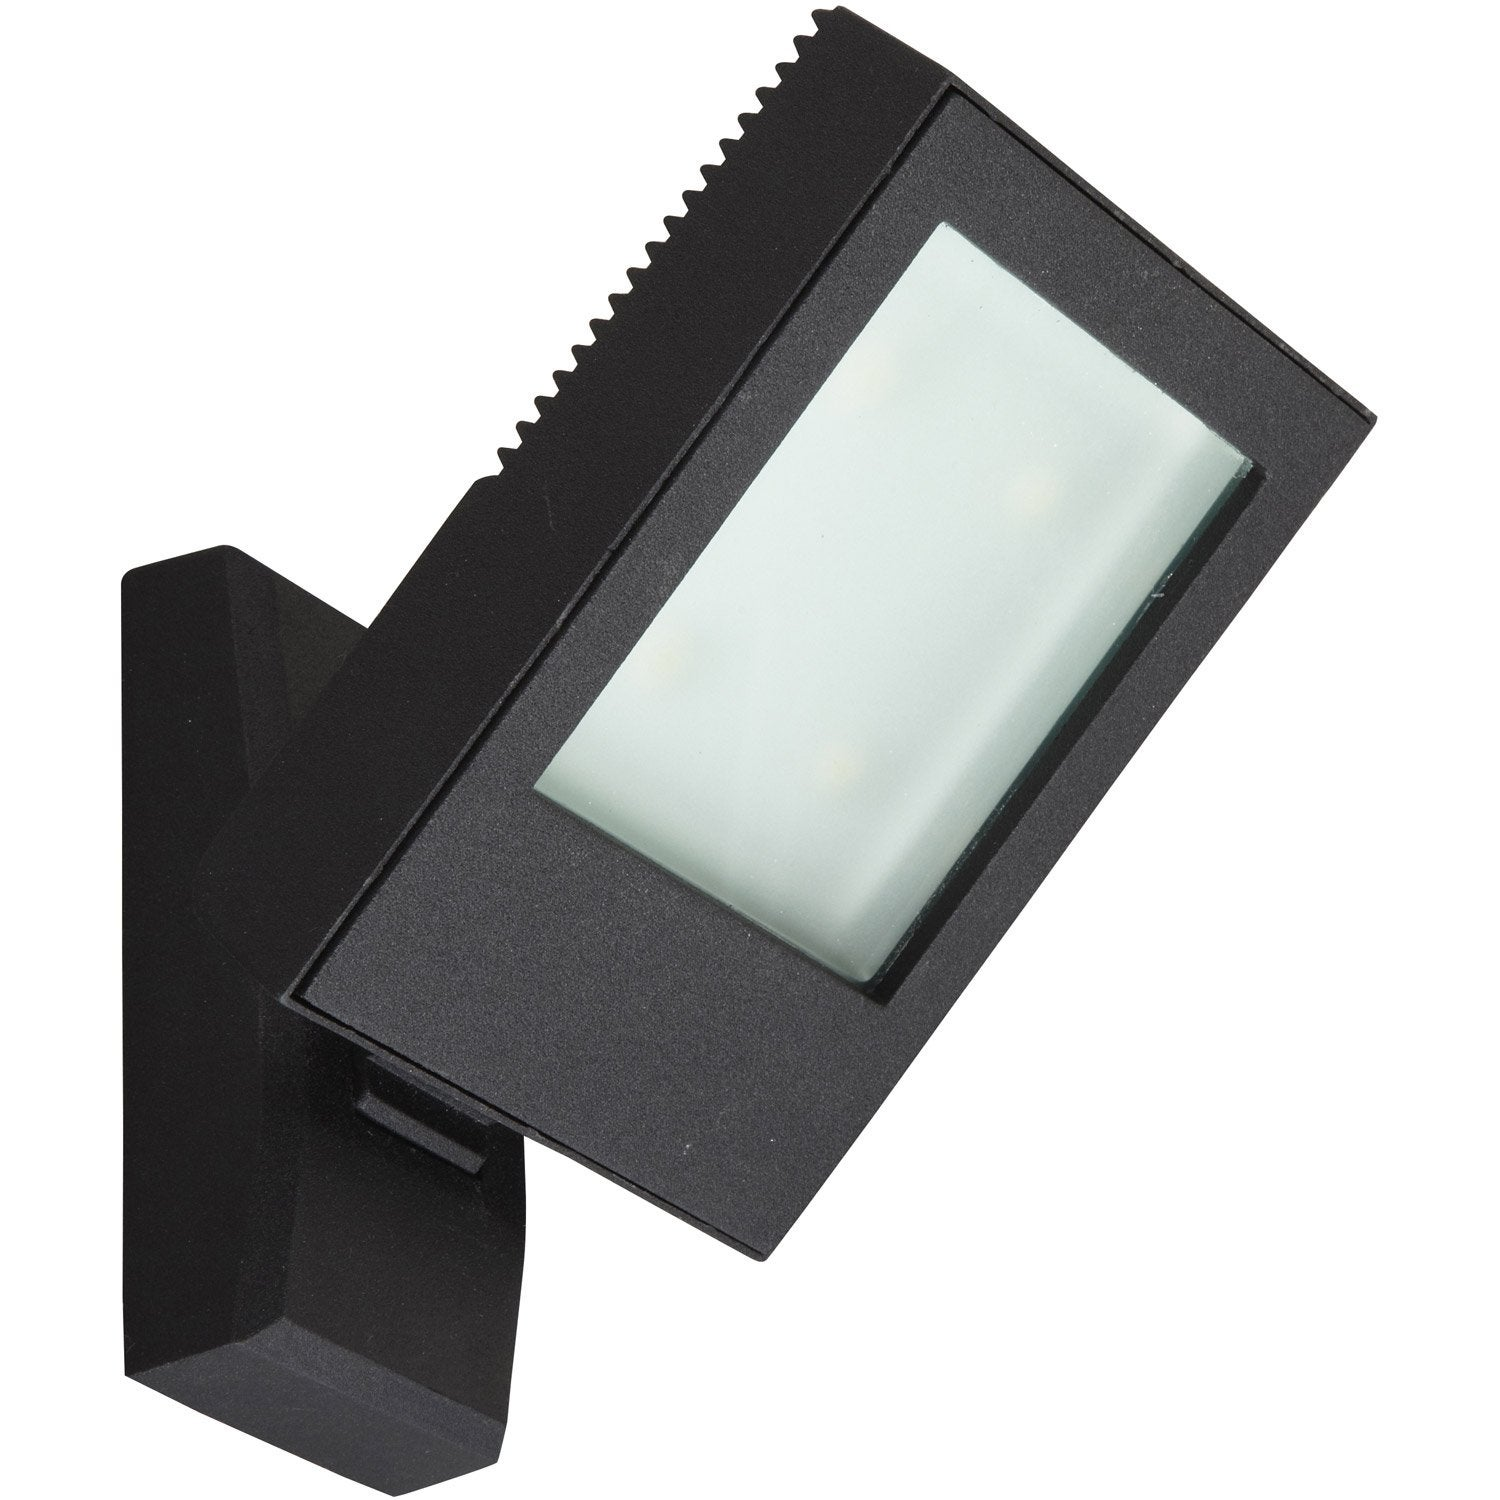 Applique montante ext rieure jade led int gr e noir for Applique murale exterieure led